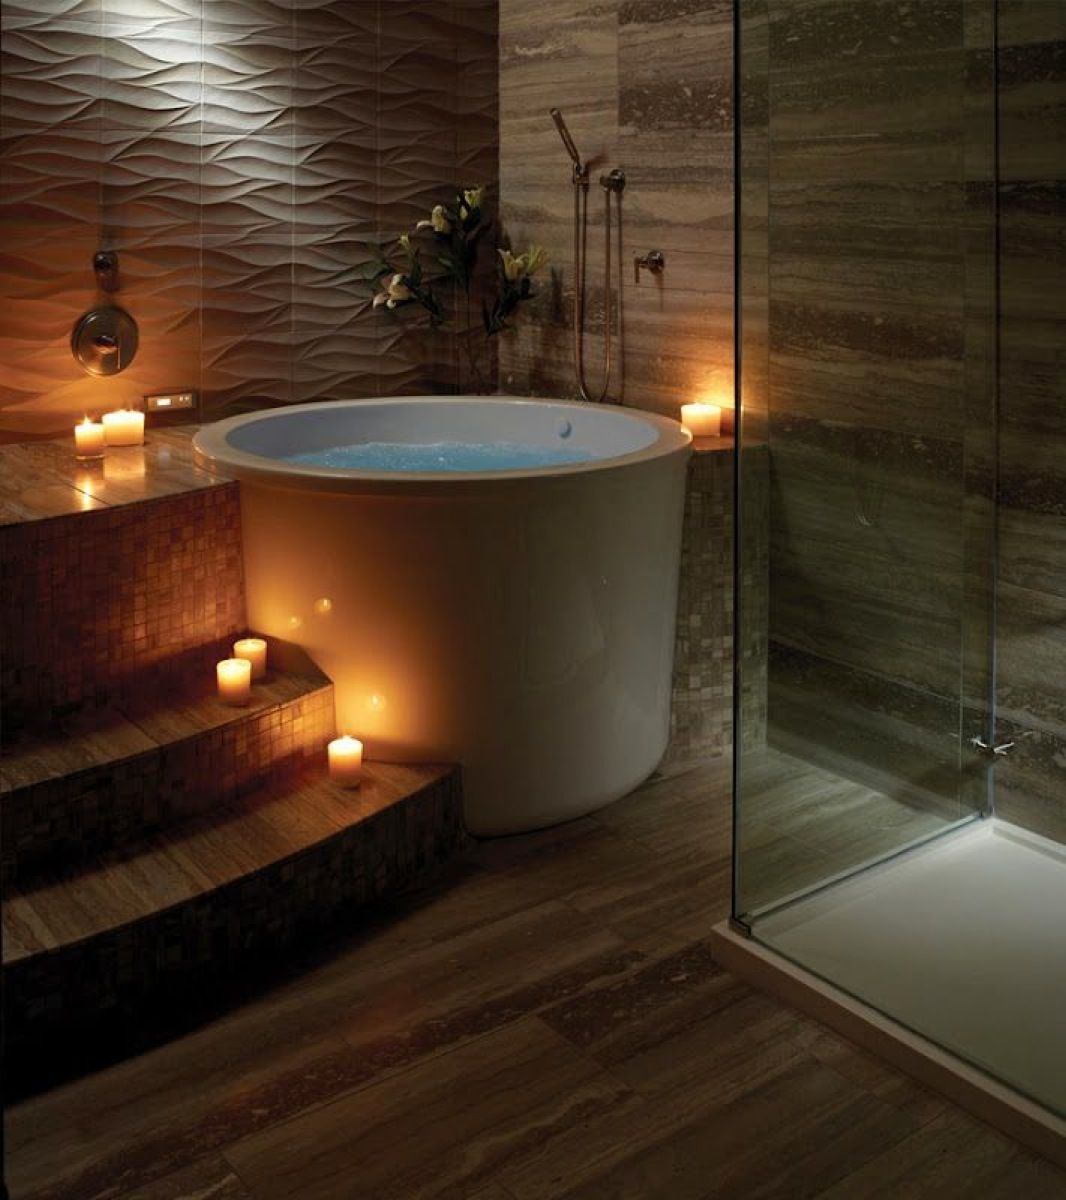 Bask in Tranquility with a Japanese-Style Bathroom | Pinterest ...